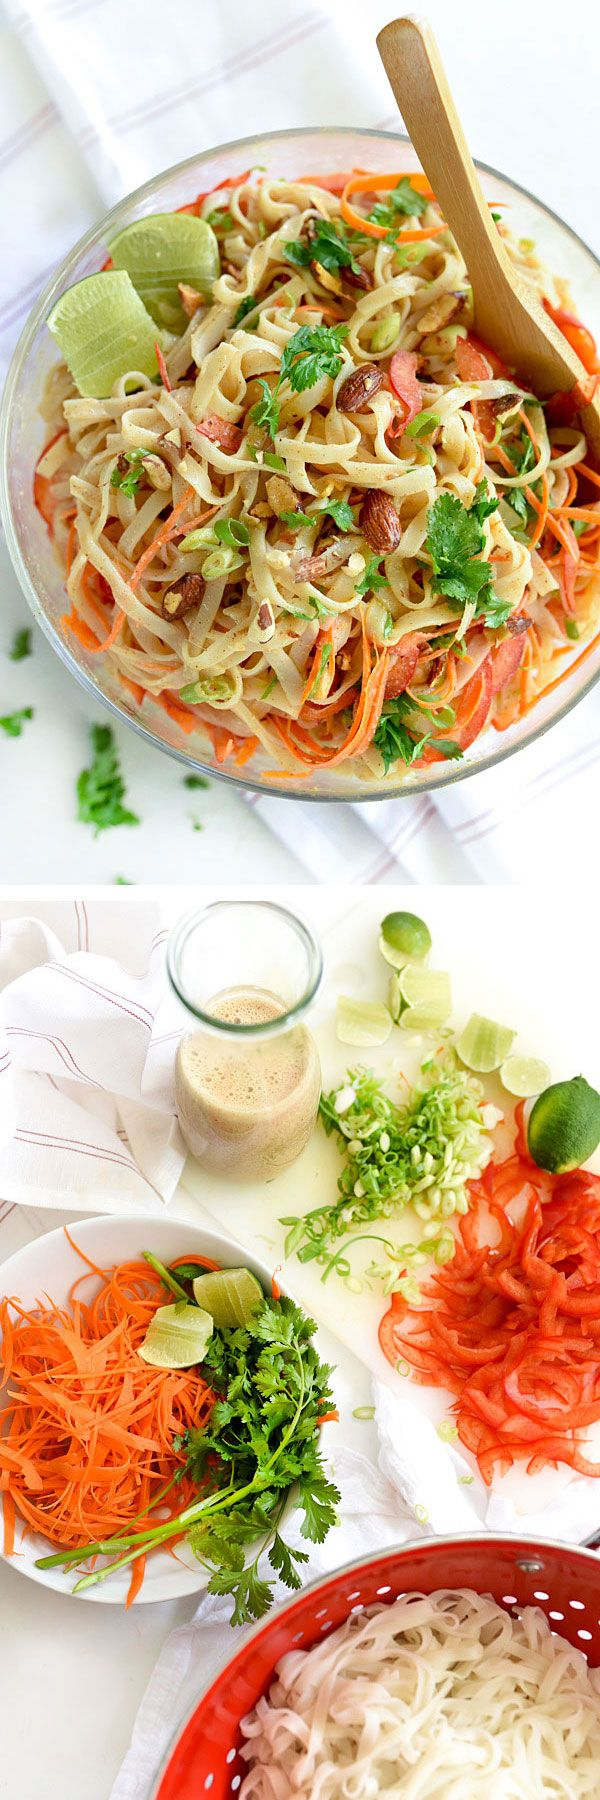 I shook things up by subbing Almond Breeze Almondmilk Coconutmilk, clocking in at 60 calories per cup, for canned coconut milk that weighs in at 360 calories per cup in the dressing for this cold noodle salad. My stretchy pants are thanking me.